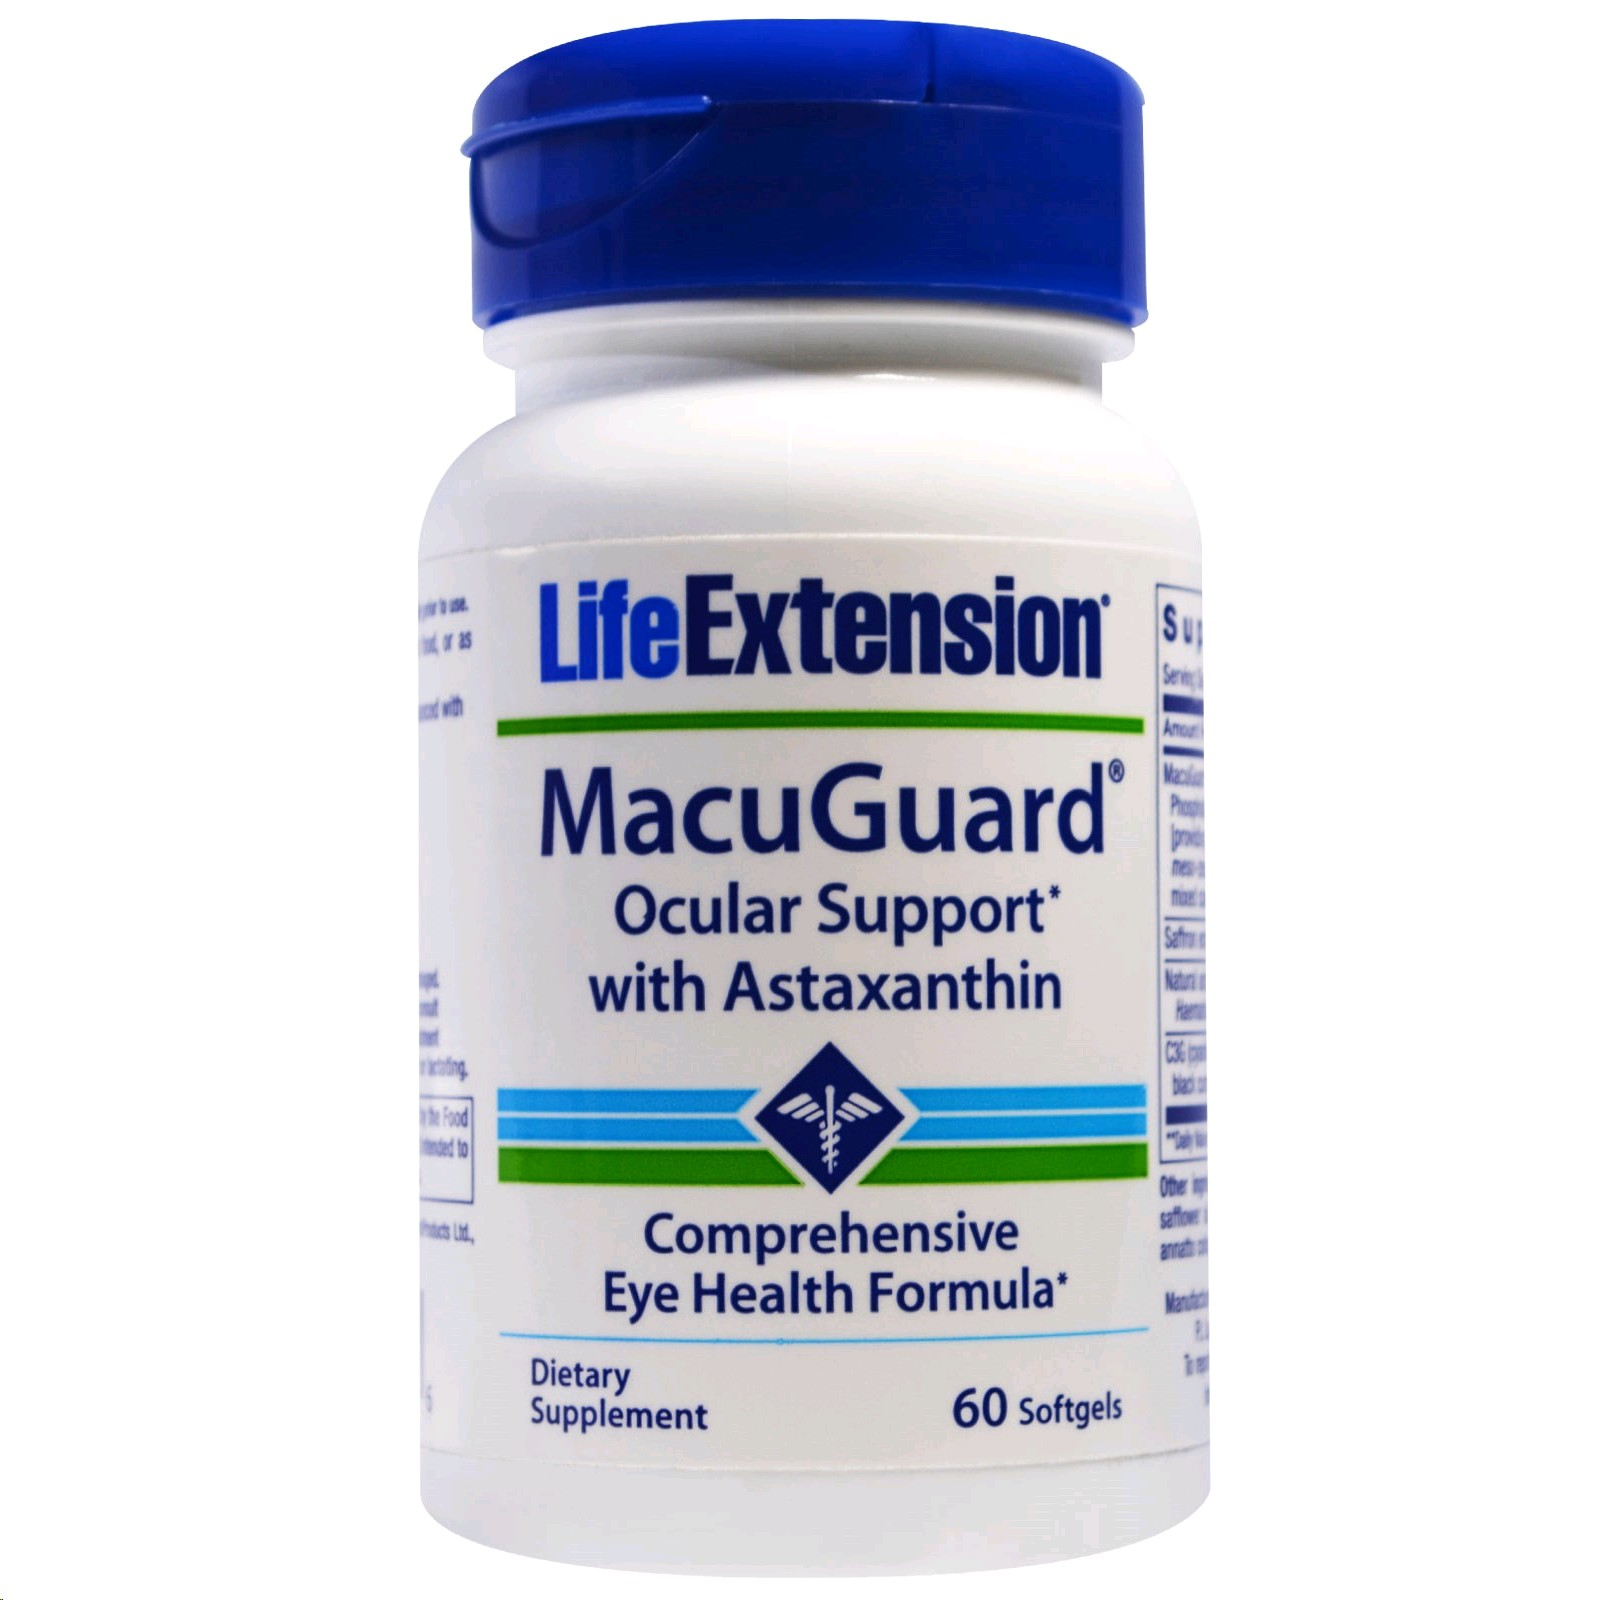 LIFE EXTENSION MACUGUARD OCULAR SUPPORT AMB  ASTAXANTHIN 60 CAPSULES